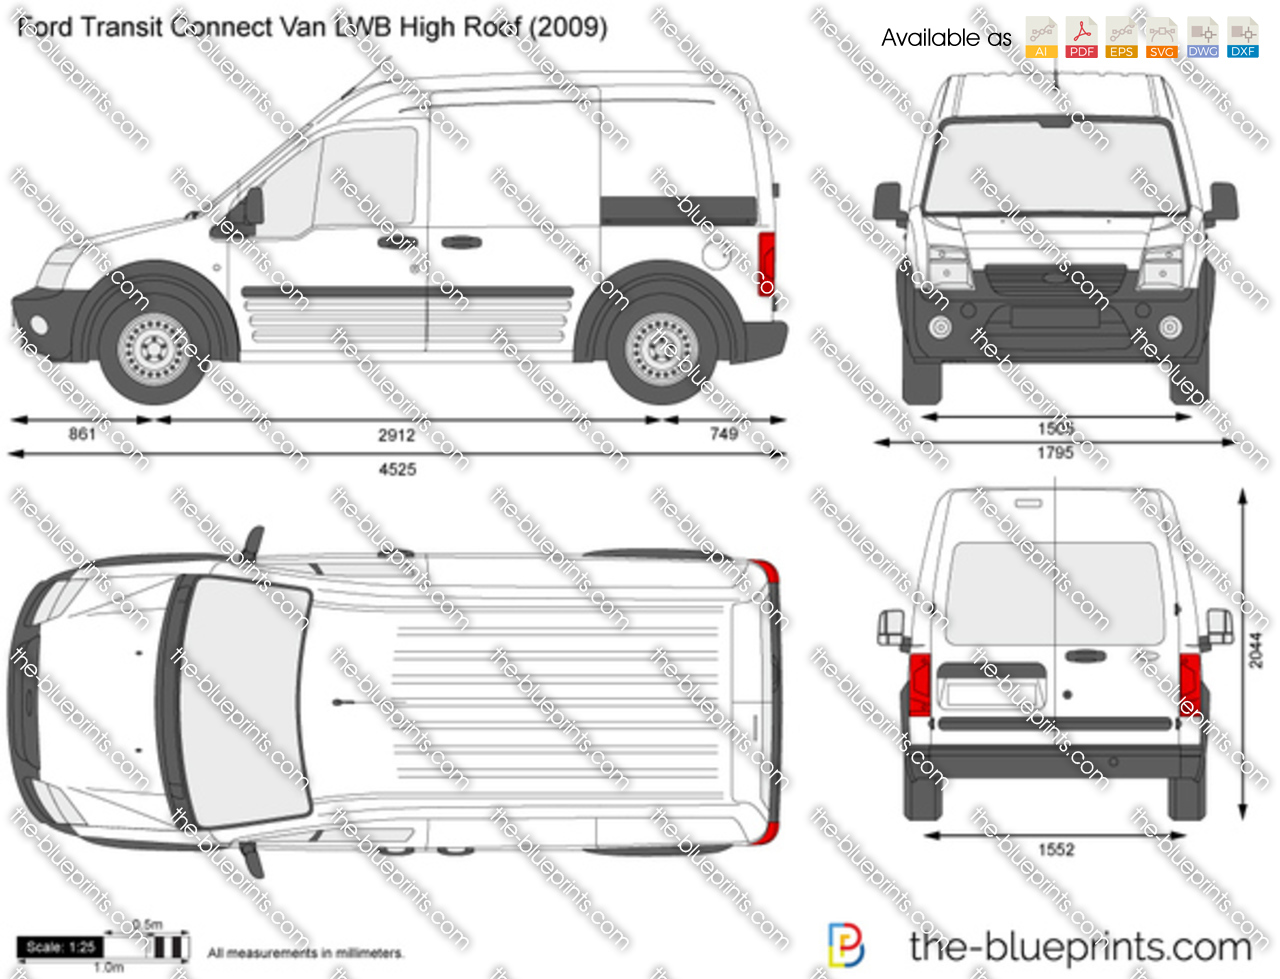 Ford Transit Connect Van LWB High Roof 2002